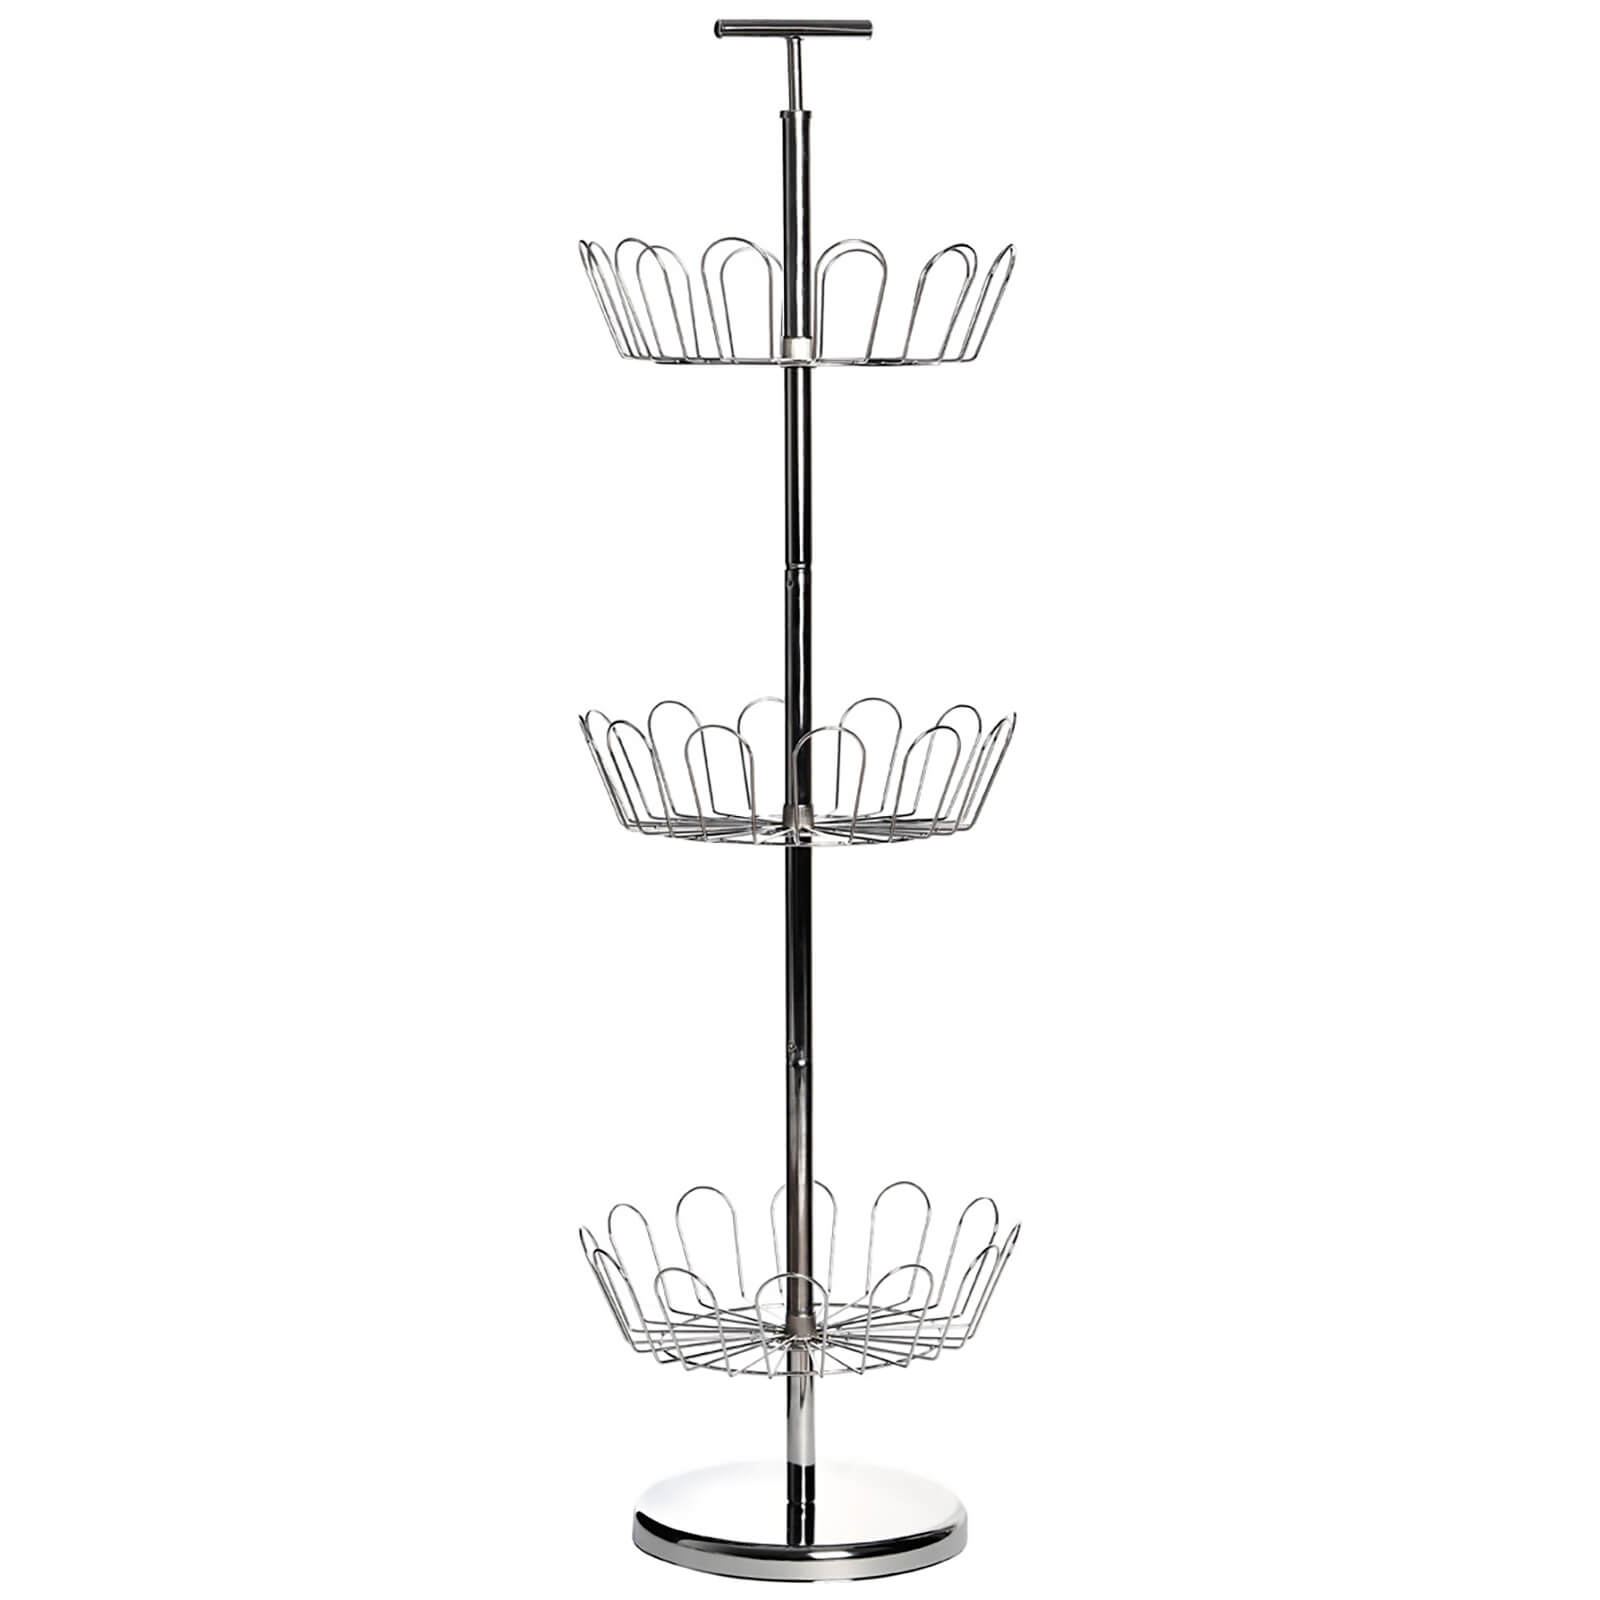 Fifty Five South Revolving Shoe Stand for 18 Pairs - Chrome